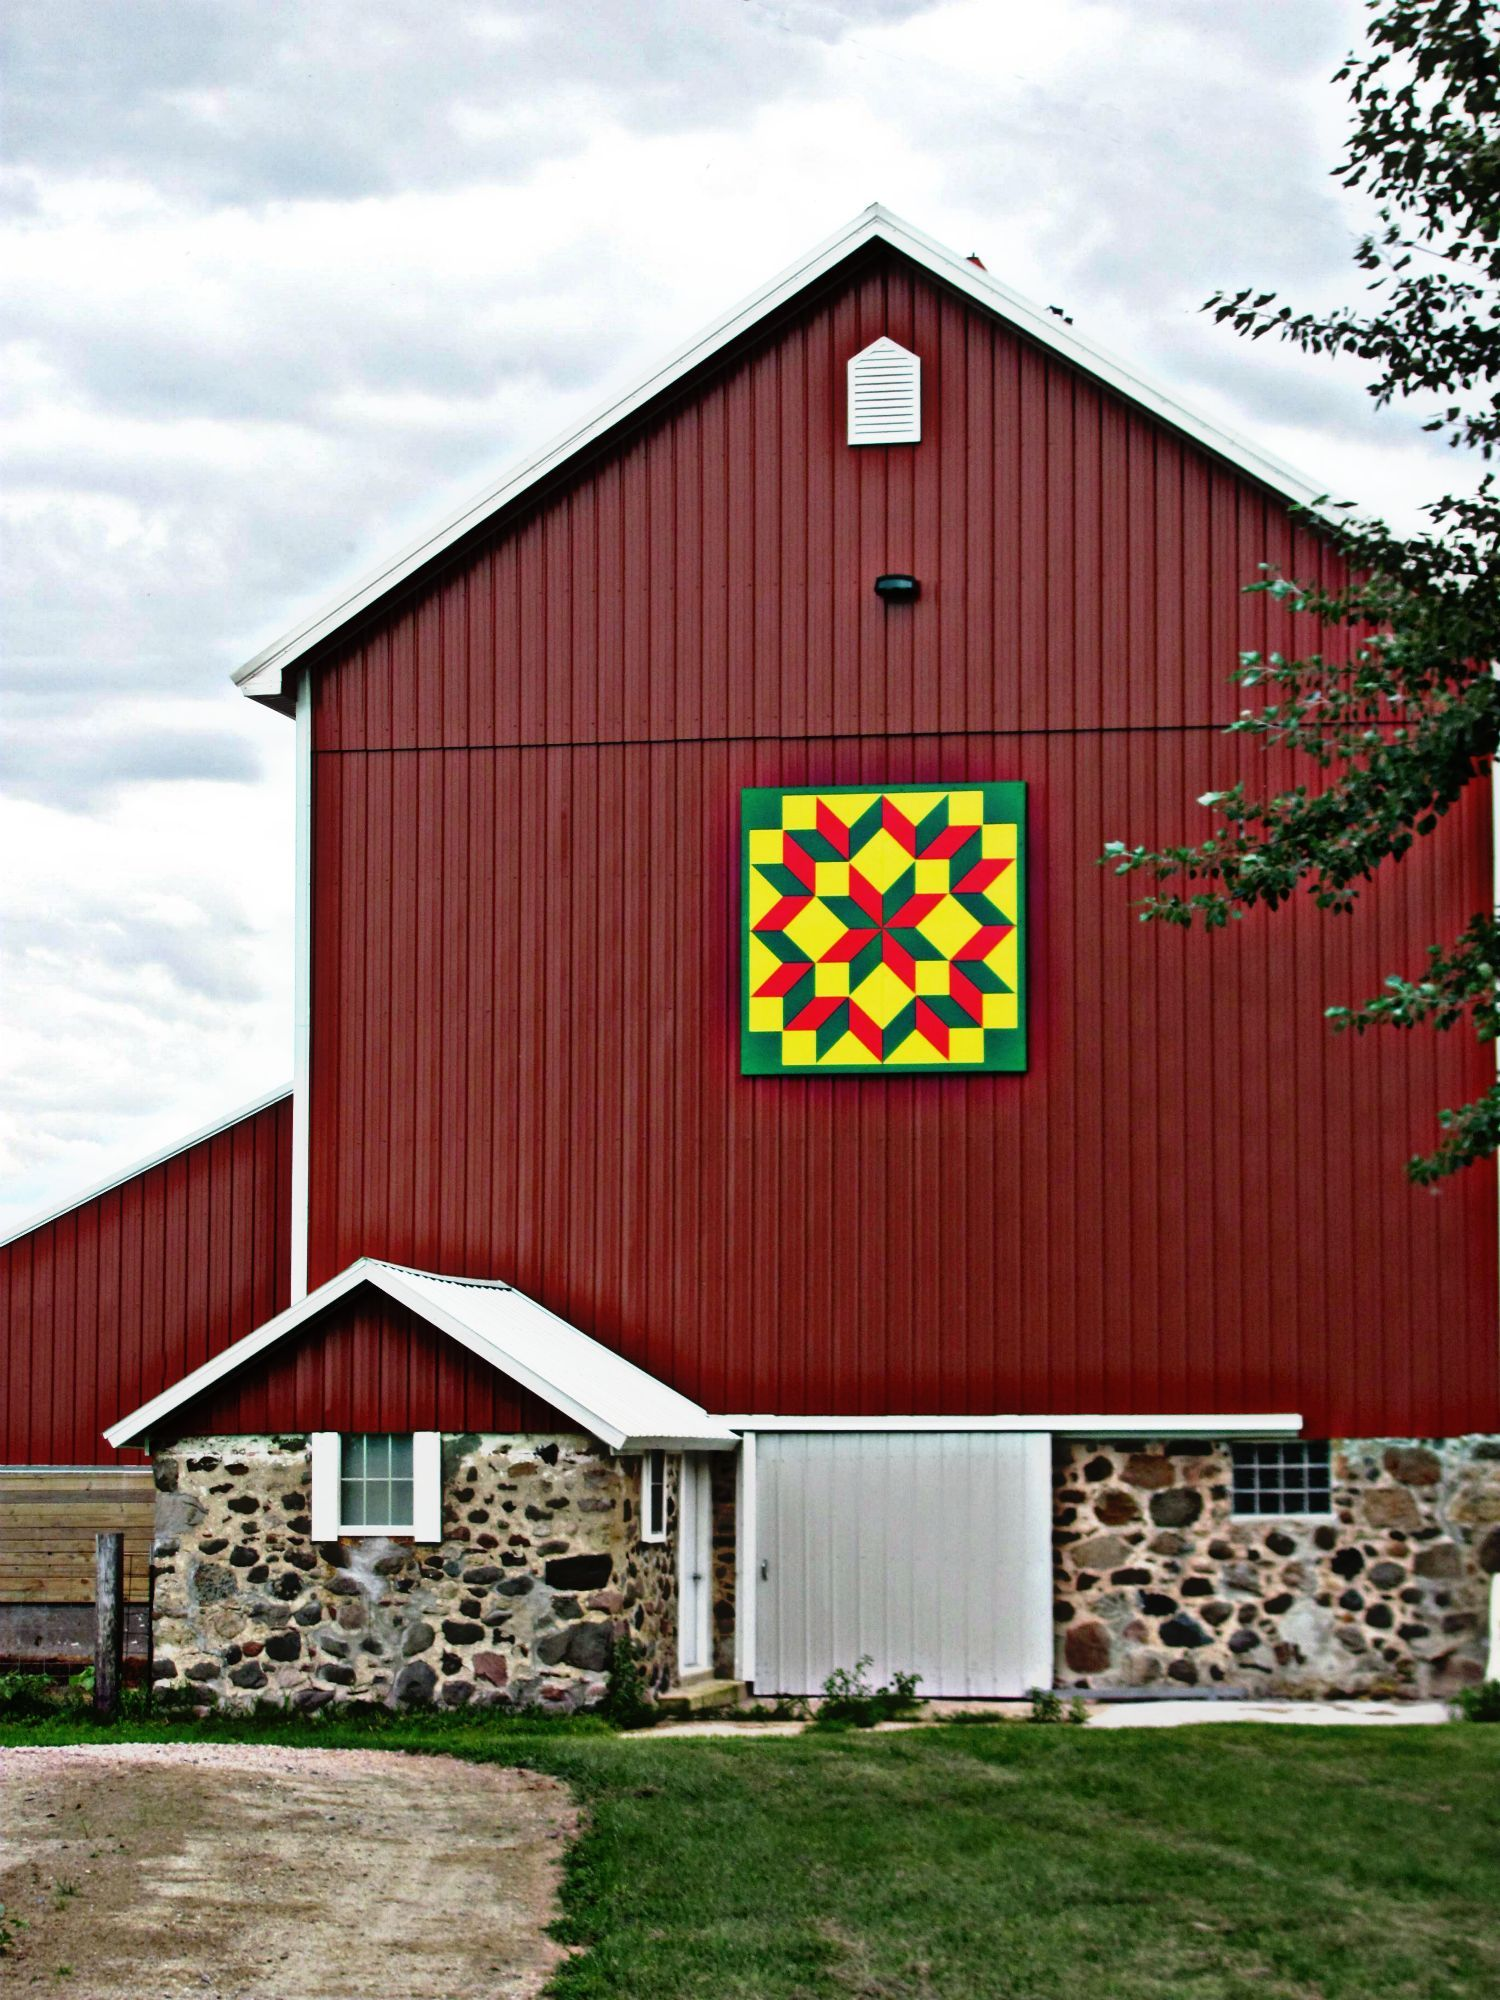 Barns: Quilt Square Barn